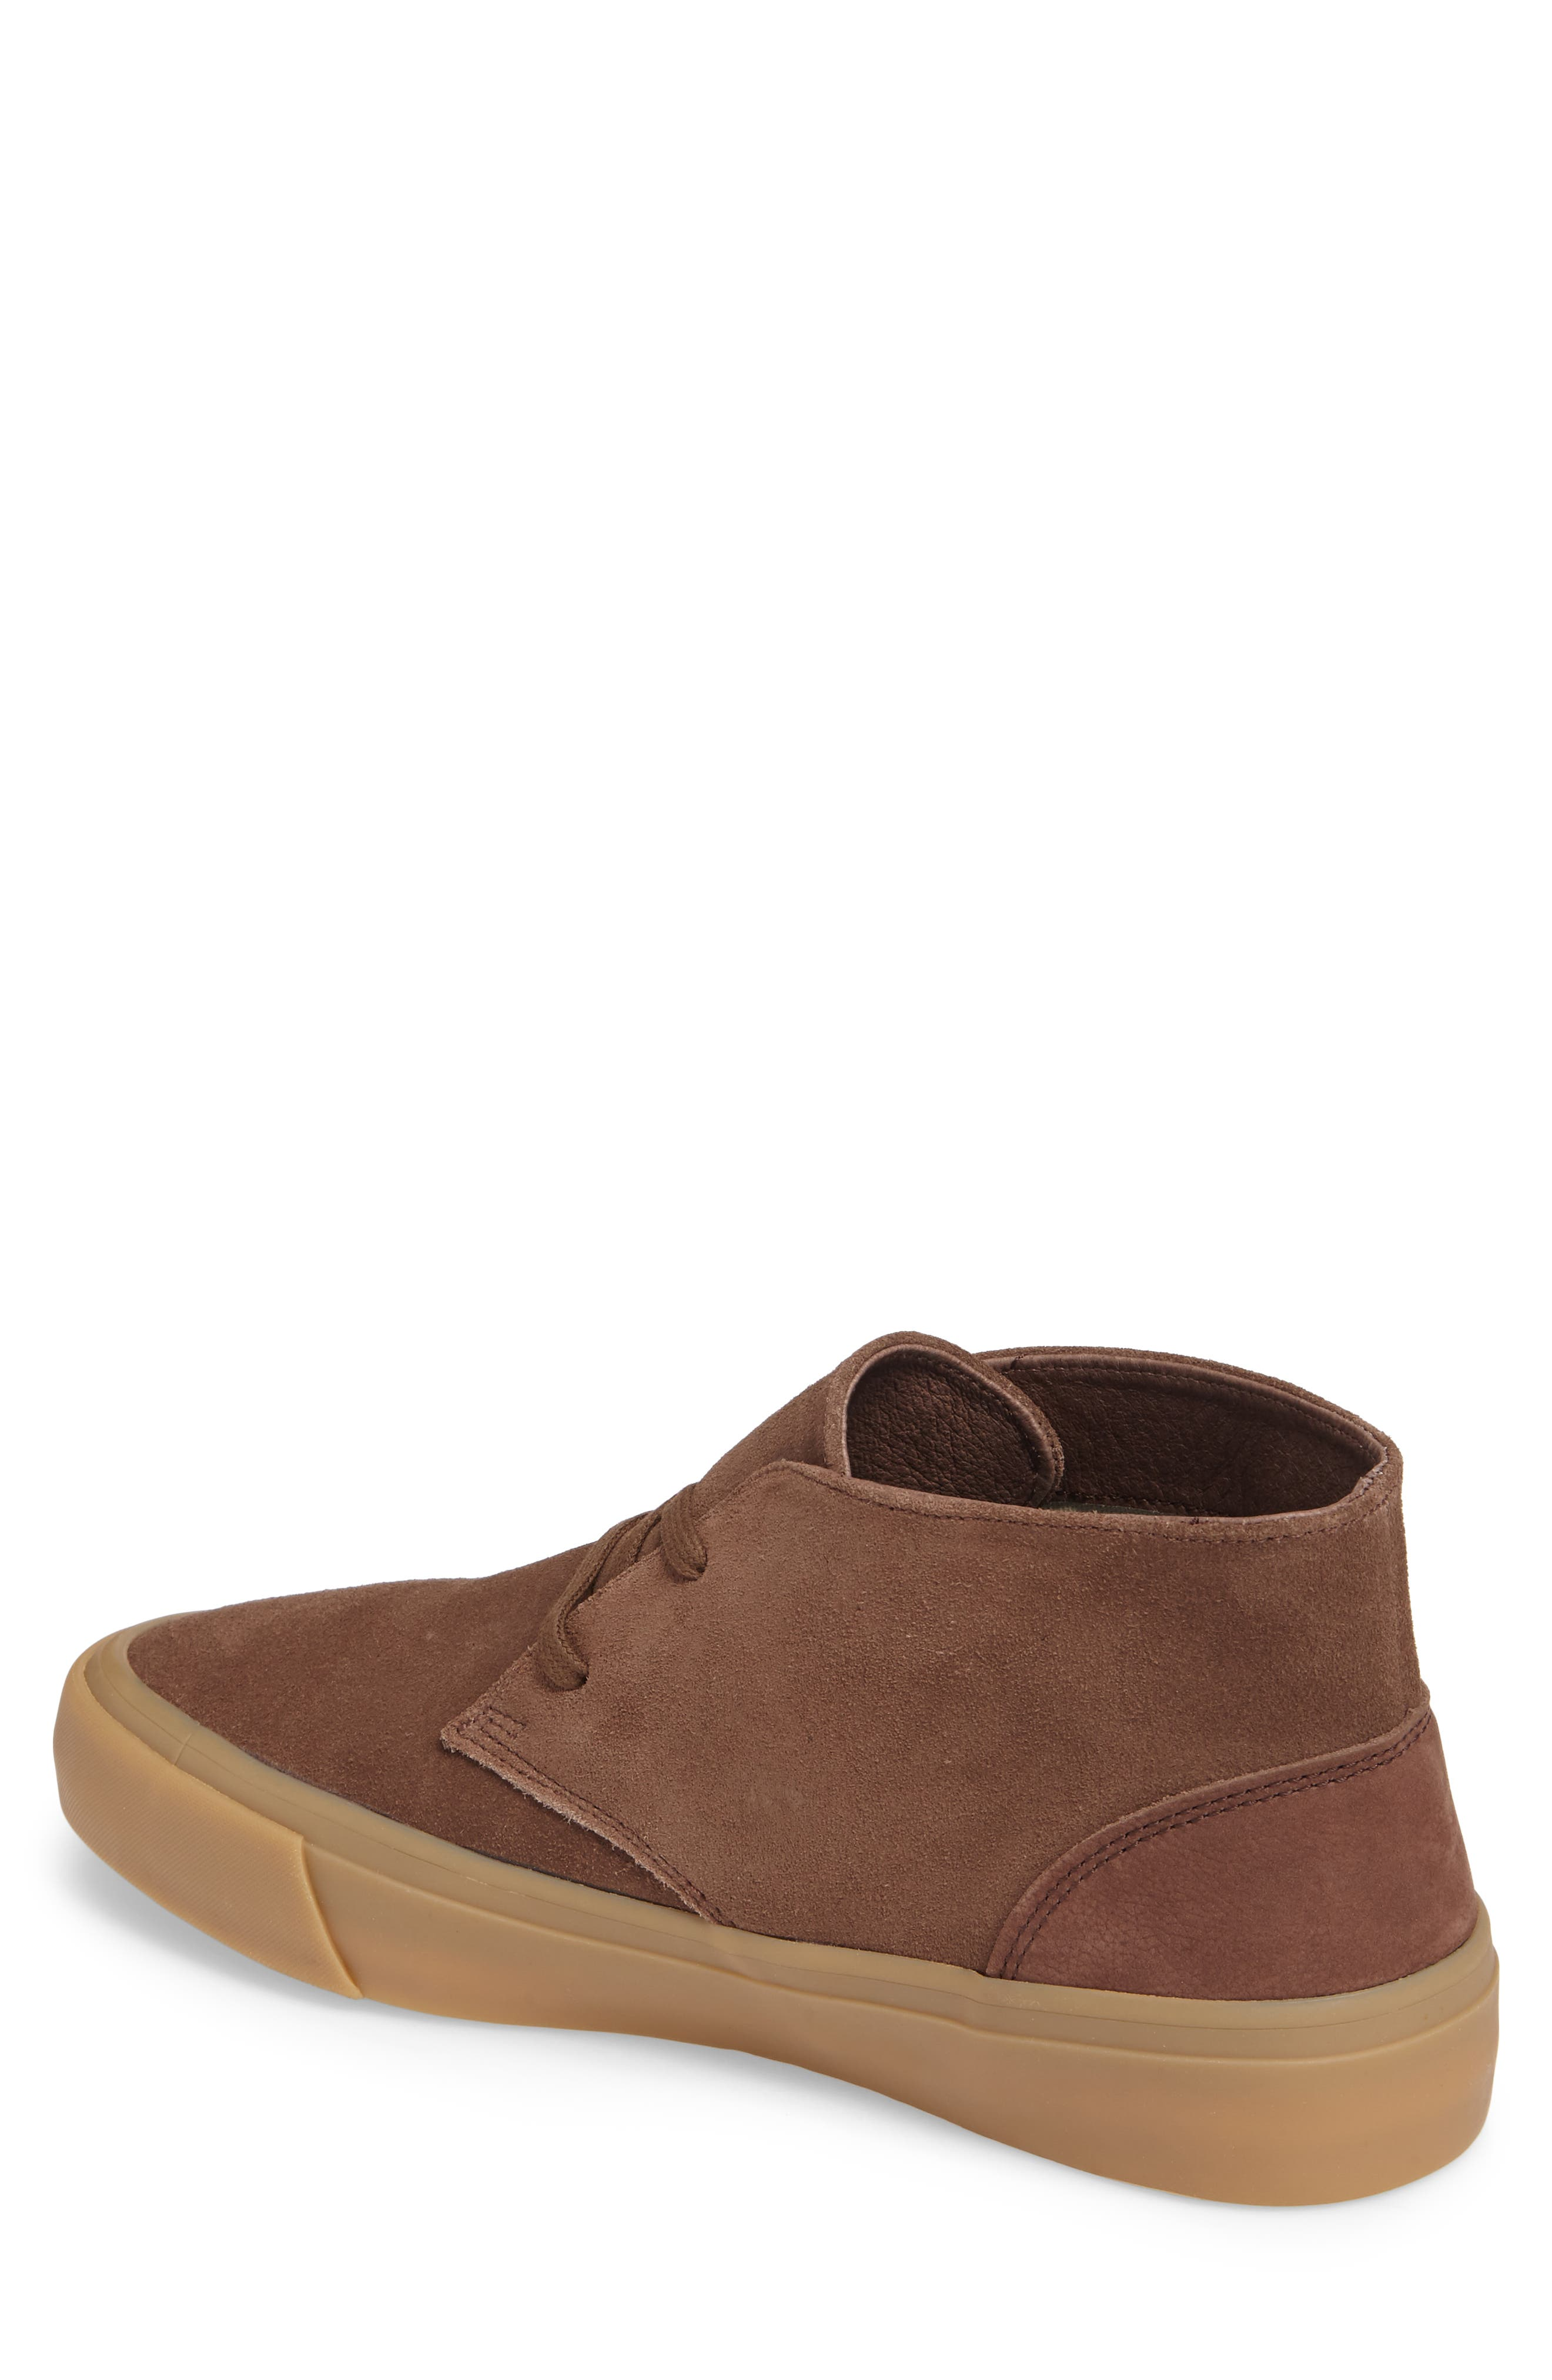 Alternate Image 2  - Seavees Maslon Chukka Boot (Men)